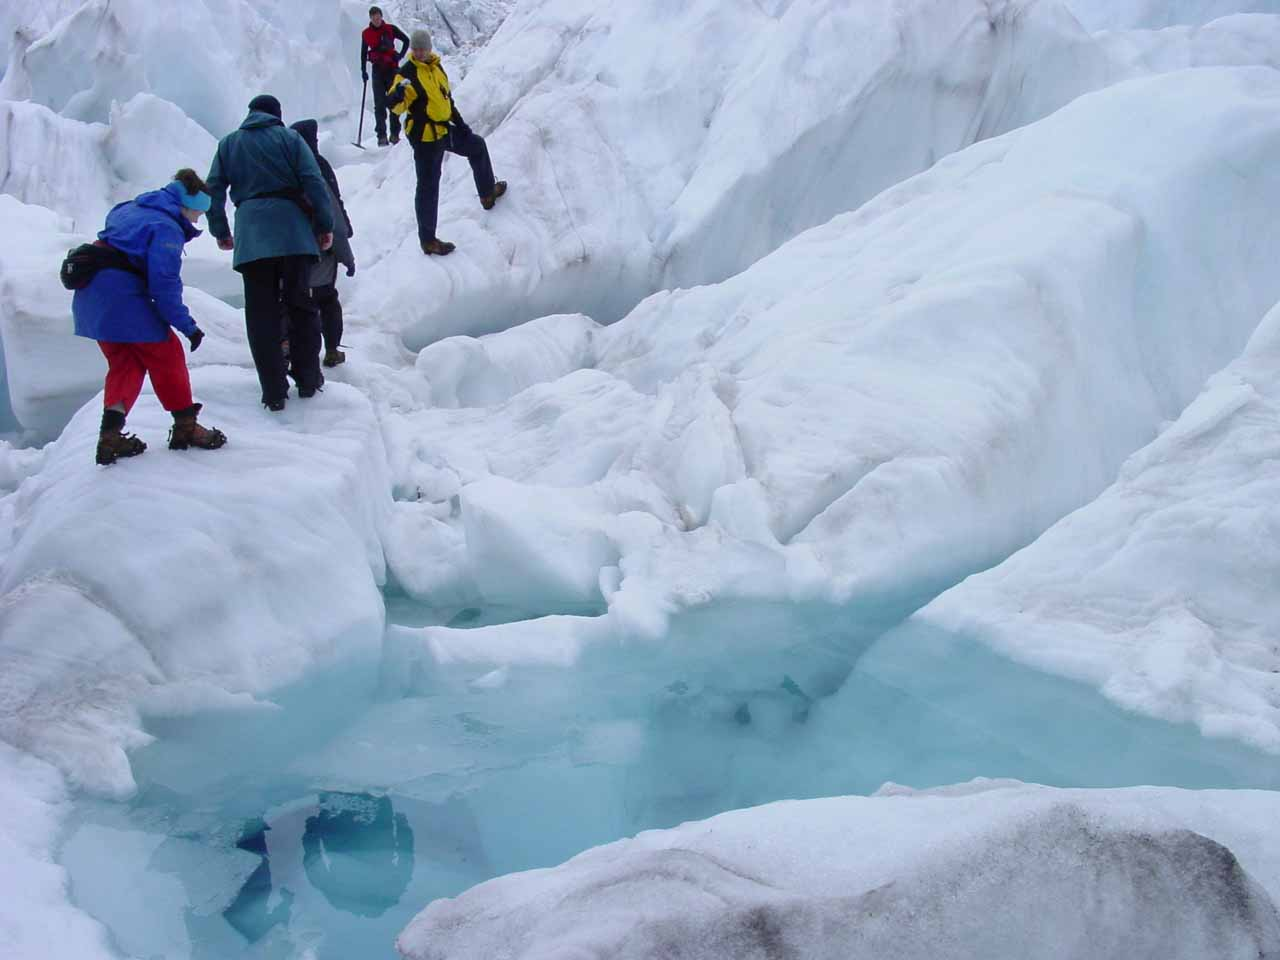 The tour group going around some pools of melted glacier water while we were atop the Franz Josef Glacier